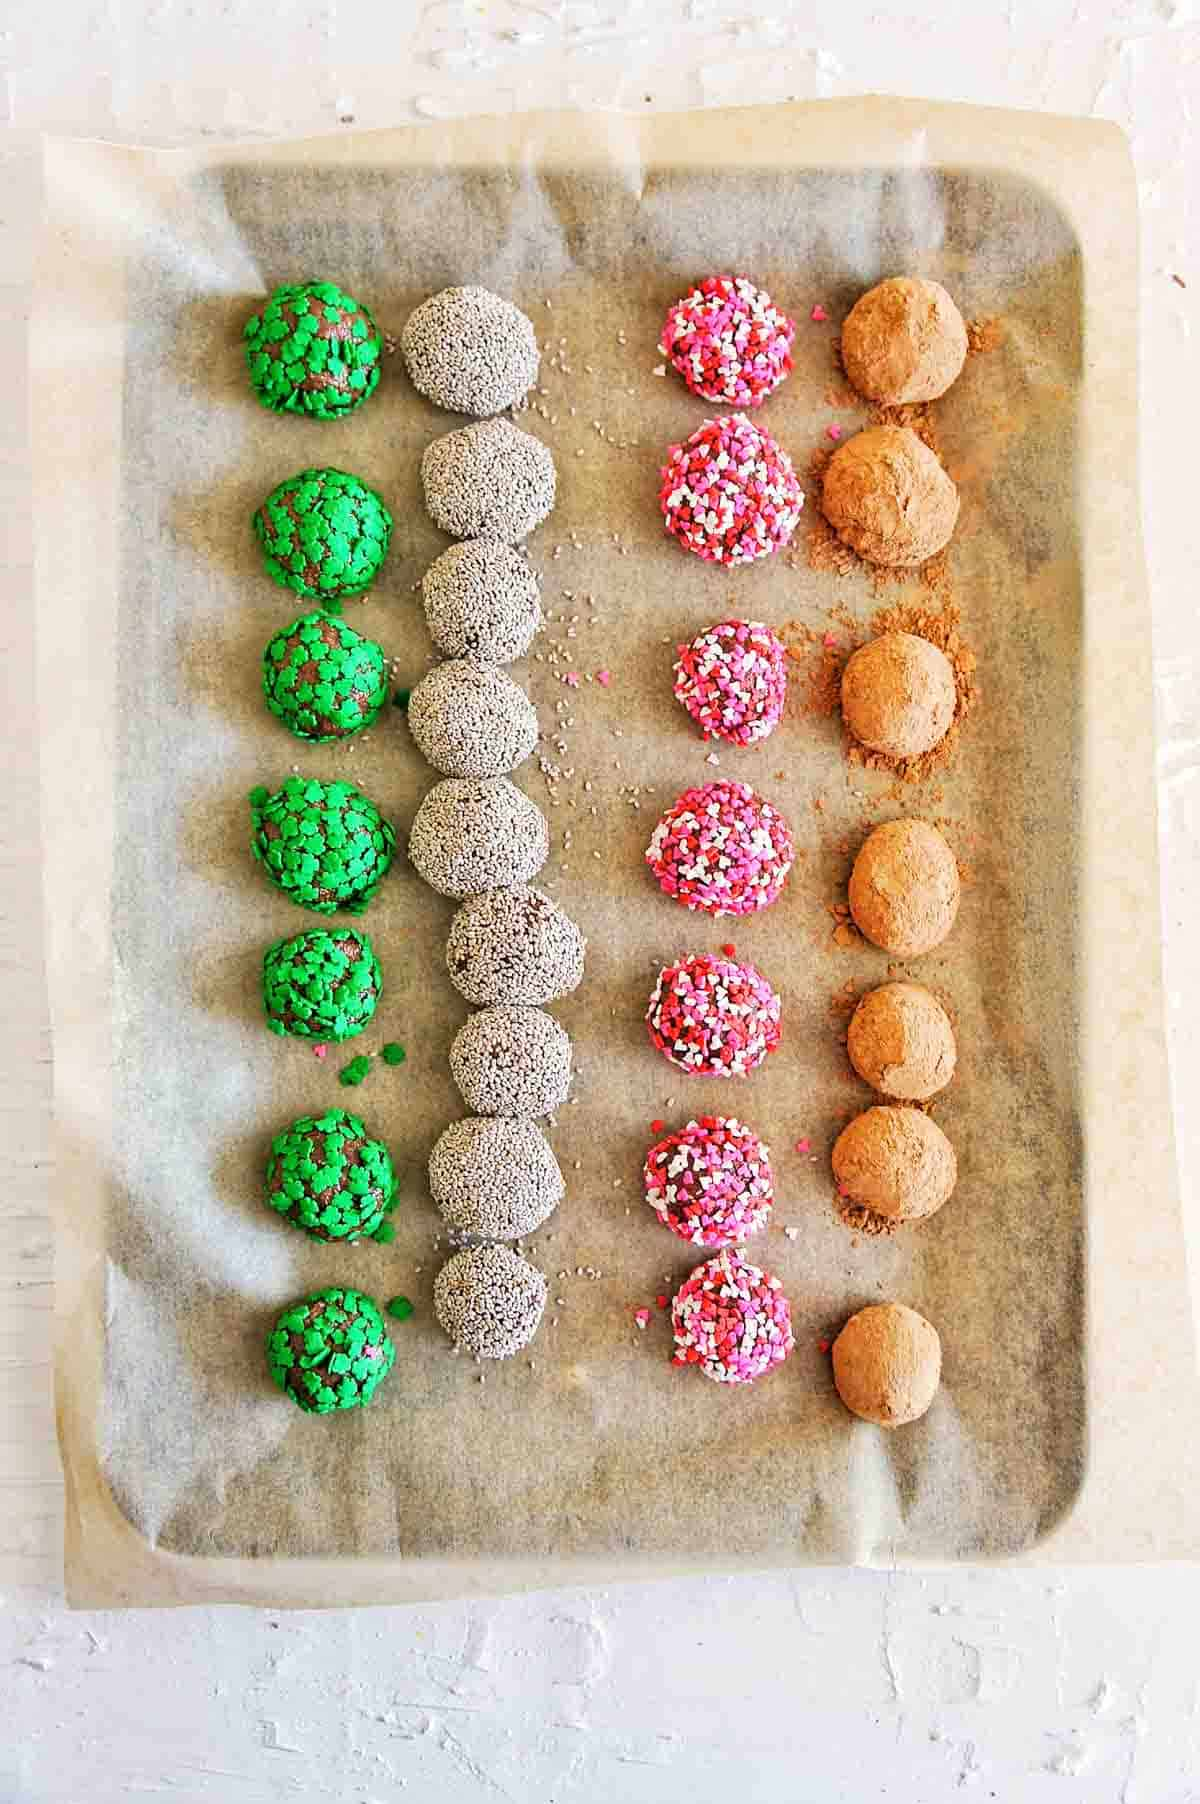 A baking tray with rows of bliss balls